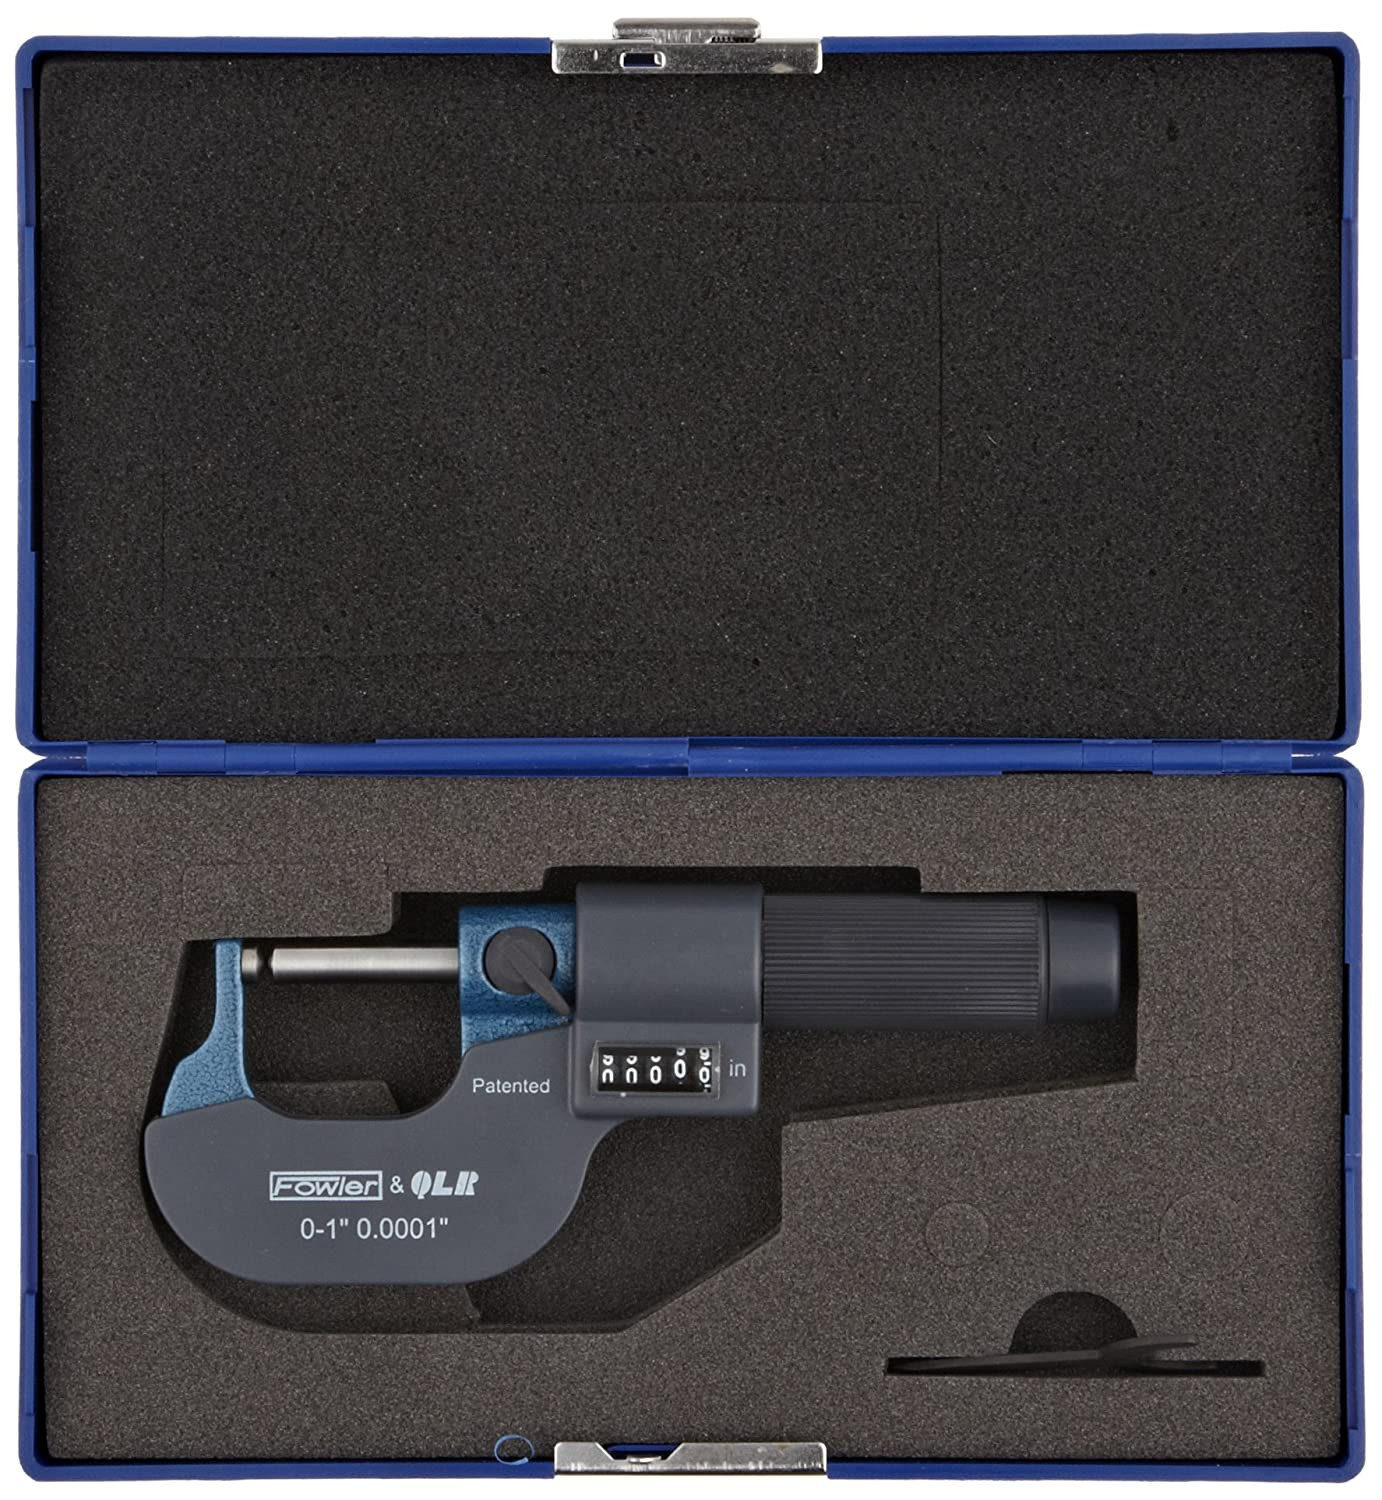 Fowler Company Inc 52-244-621-0 Fowler 52-244-621 EZ-Read Ball-Anvil//Ball Spindle Micrometer 0-1 Measuring Range 0.0002 Accuracy 0-1 Measuring Range 0.0002 Accuracy Fred V